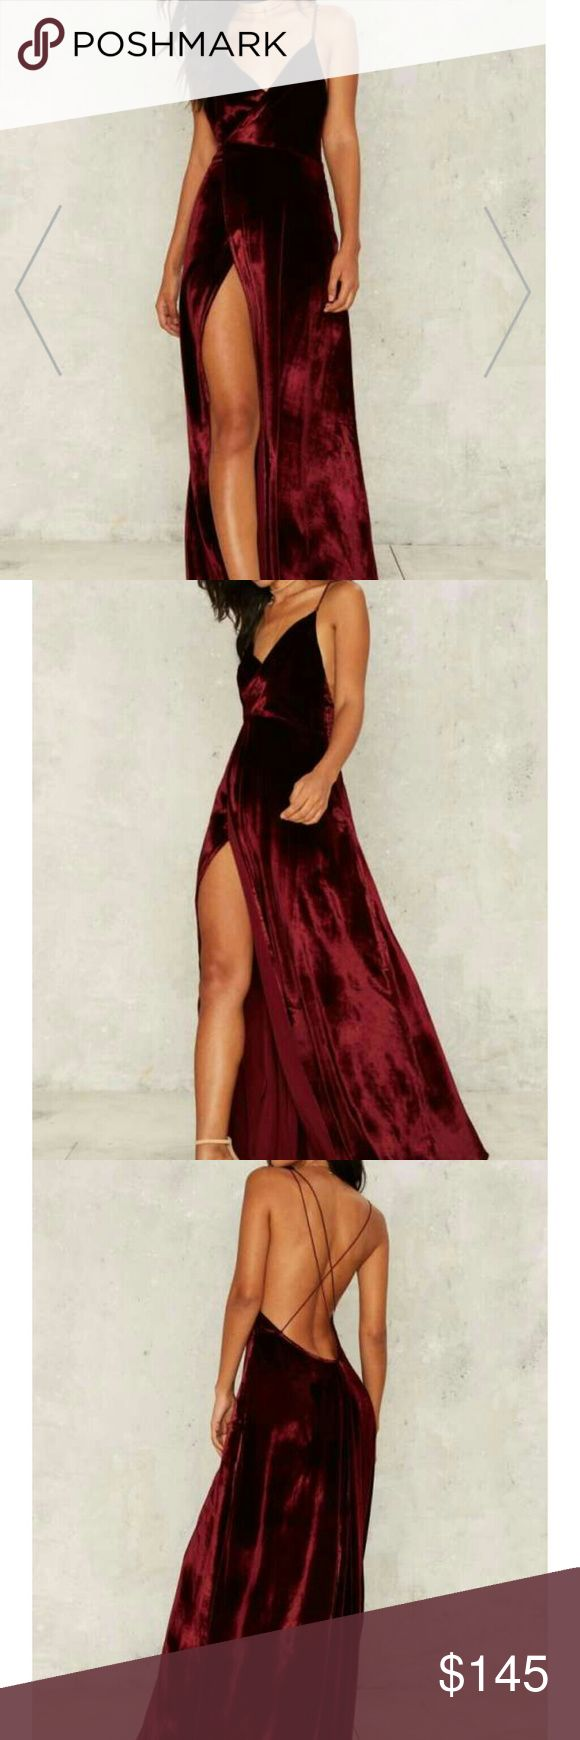 The Jetset Diaries Callie Velvet Maxi Dress Burgundy velvet and features a plunging neckline, maxi length, high slit at front, and zip closure at back. By The Jetset Diaries.  *Content 18% Silk 82% Viscose Nasty Gal Dresses